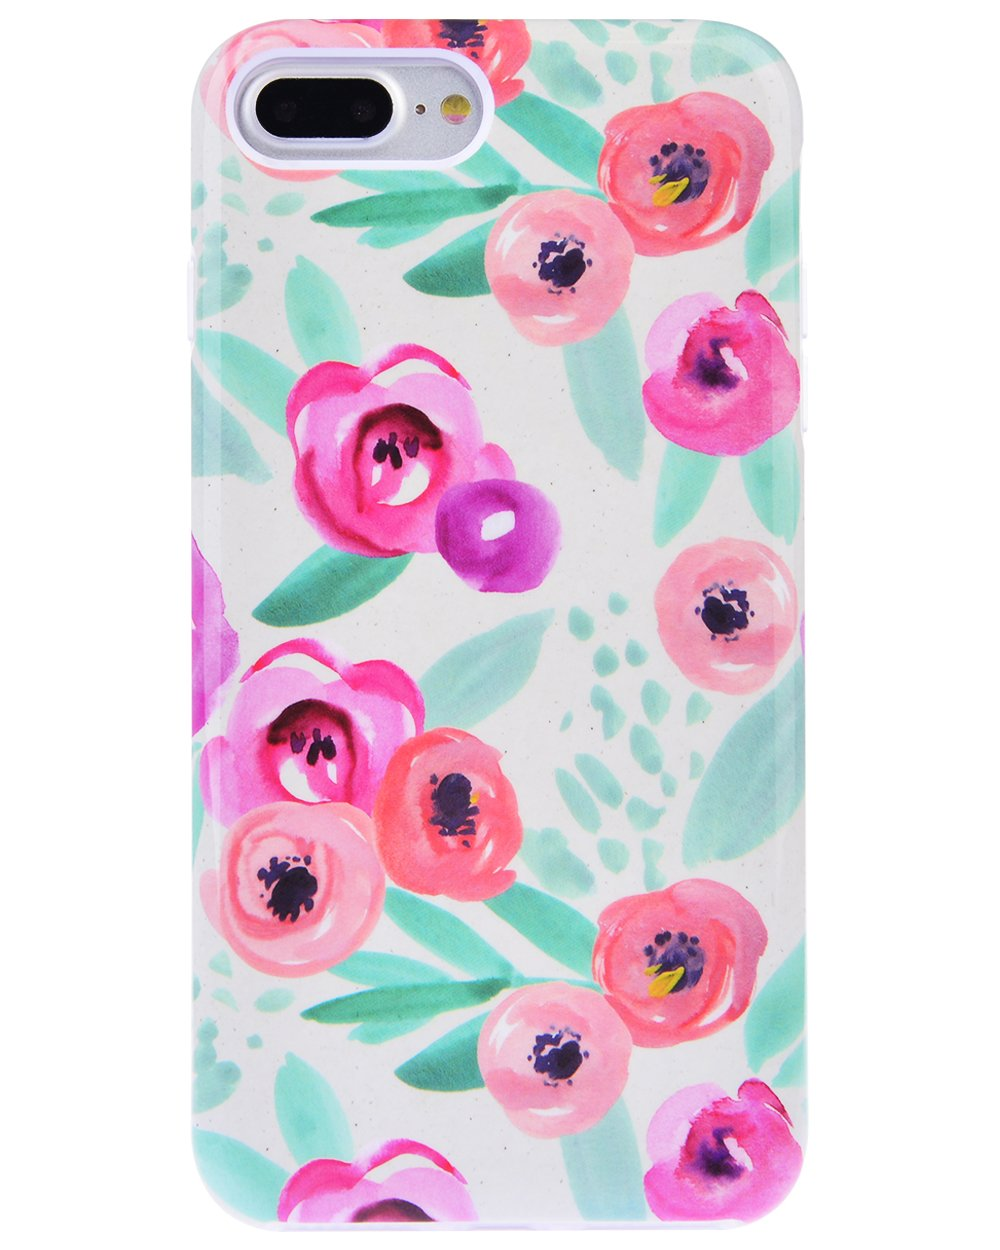 """Dimaka Case for iPhone 7 Plus Case, Cute Cartoon Rose Floral Flower Print Pattern Protective Bumper for Girls, [Drop Proof][360 Full Cover][Retro Design] for iPhone 8 Plus 5.5"""" (124)"""